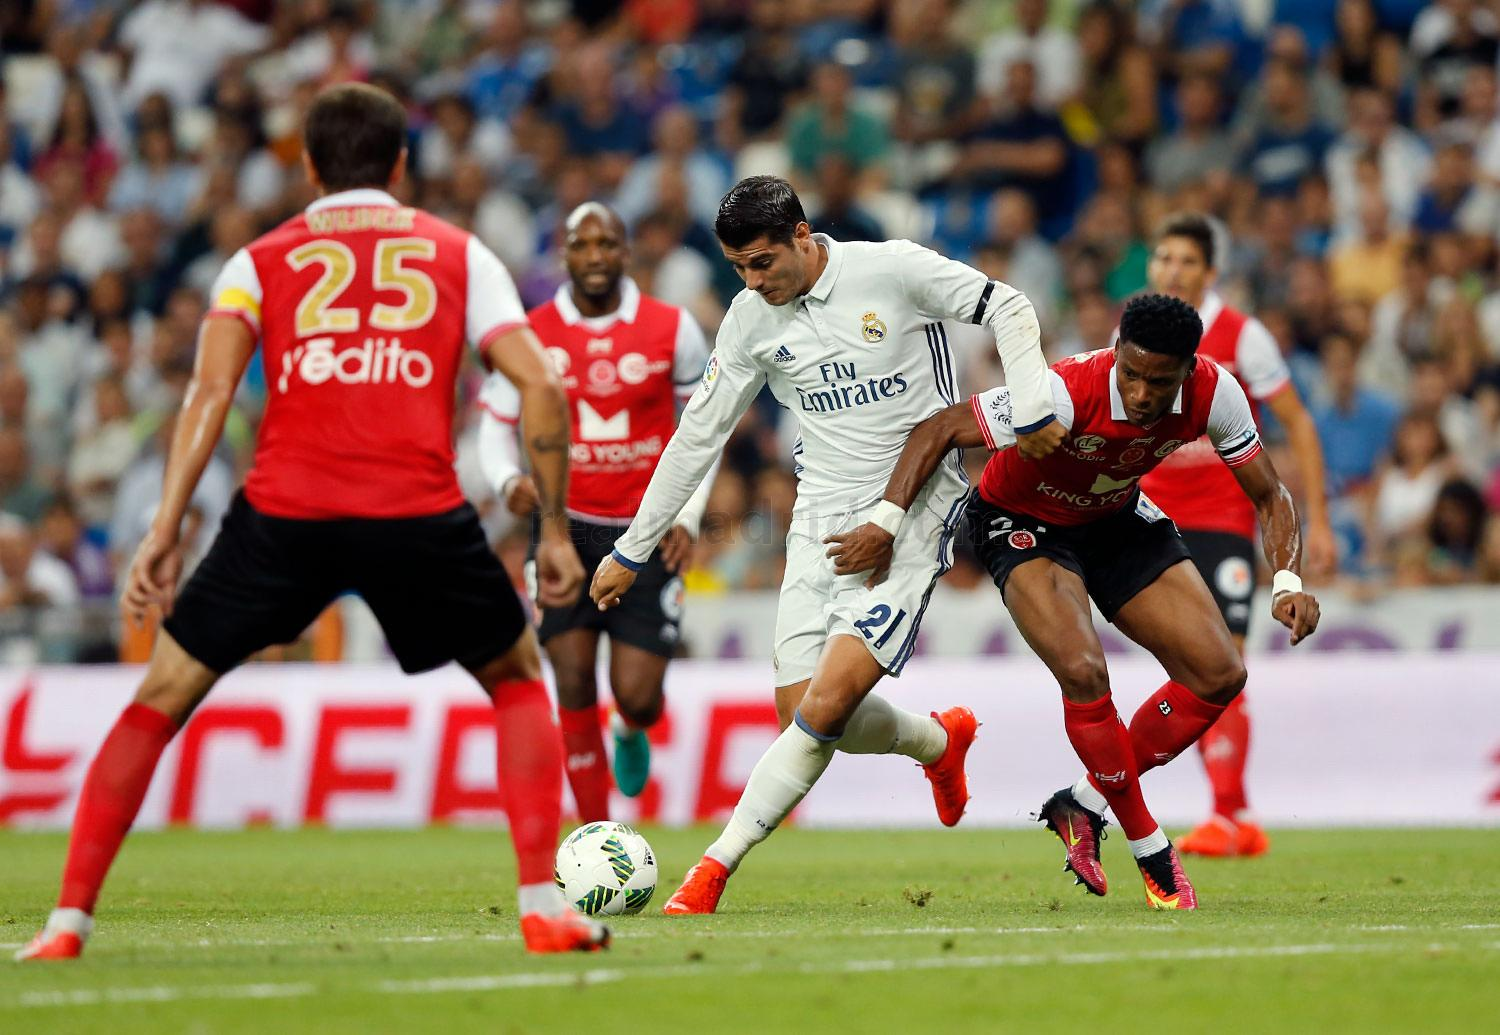 Real Madrid - Real Madrid - Stade de Reims - 16-08-2016